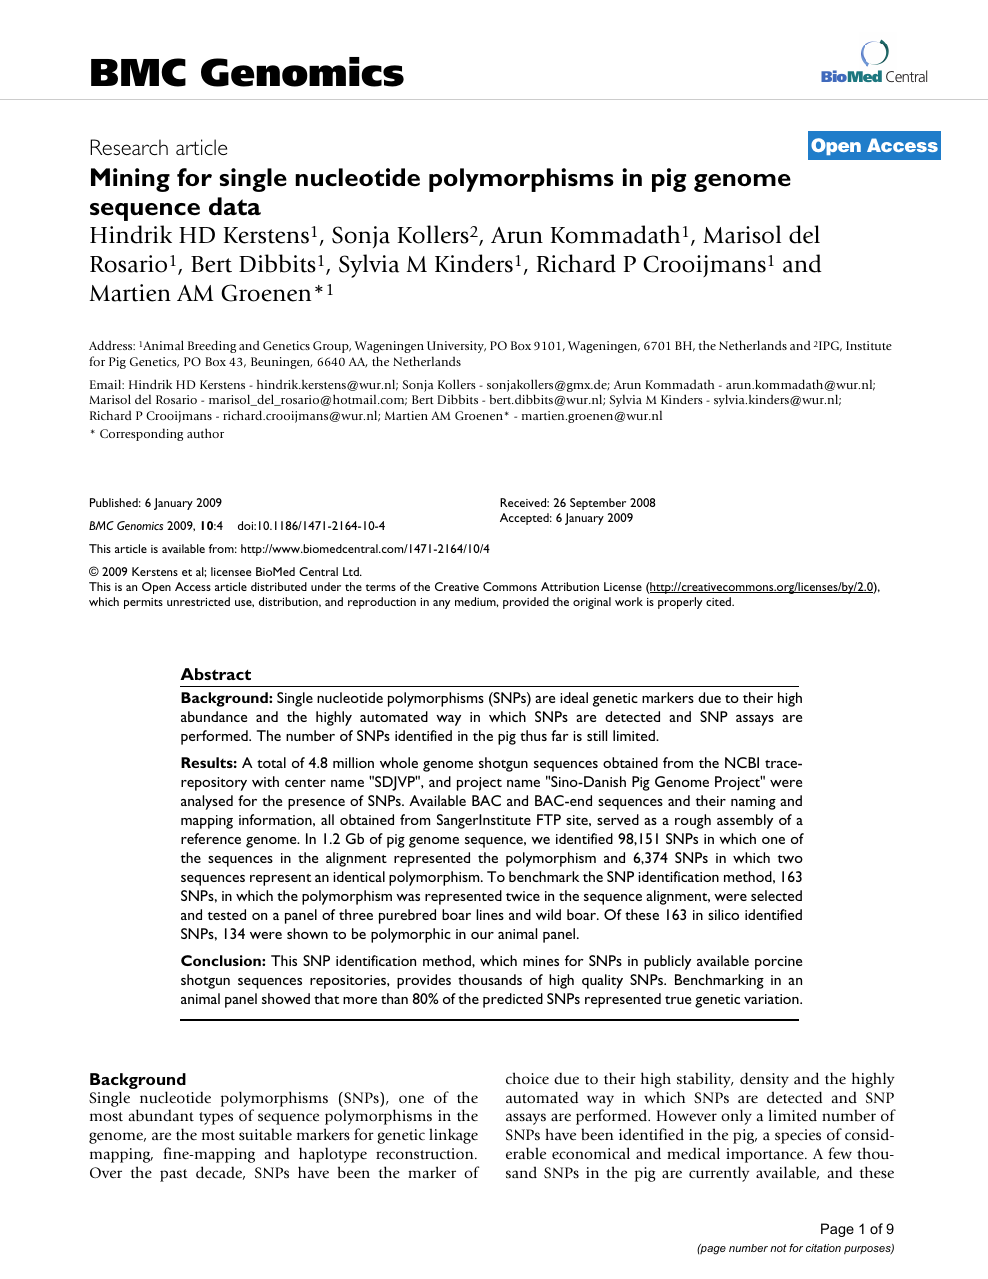 Mining for single nucleotide polymorphisms in pig genome